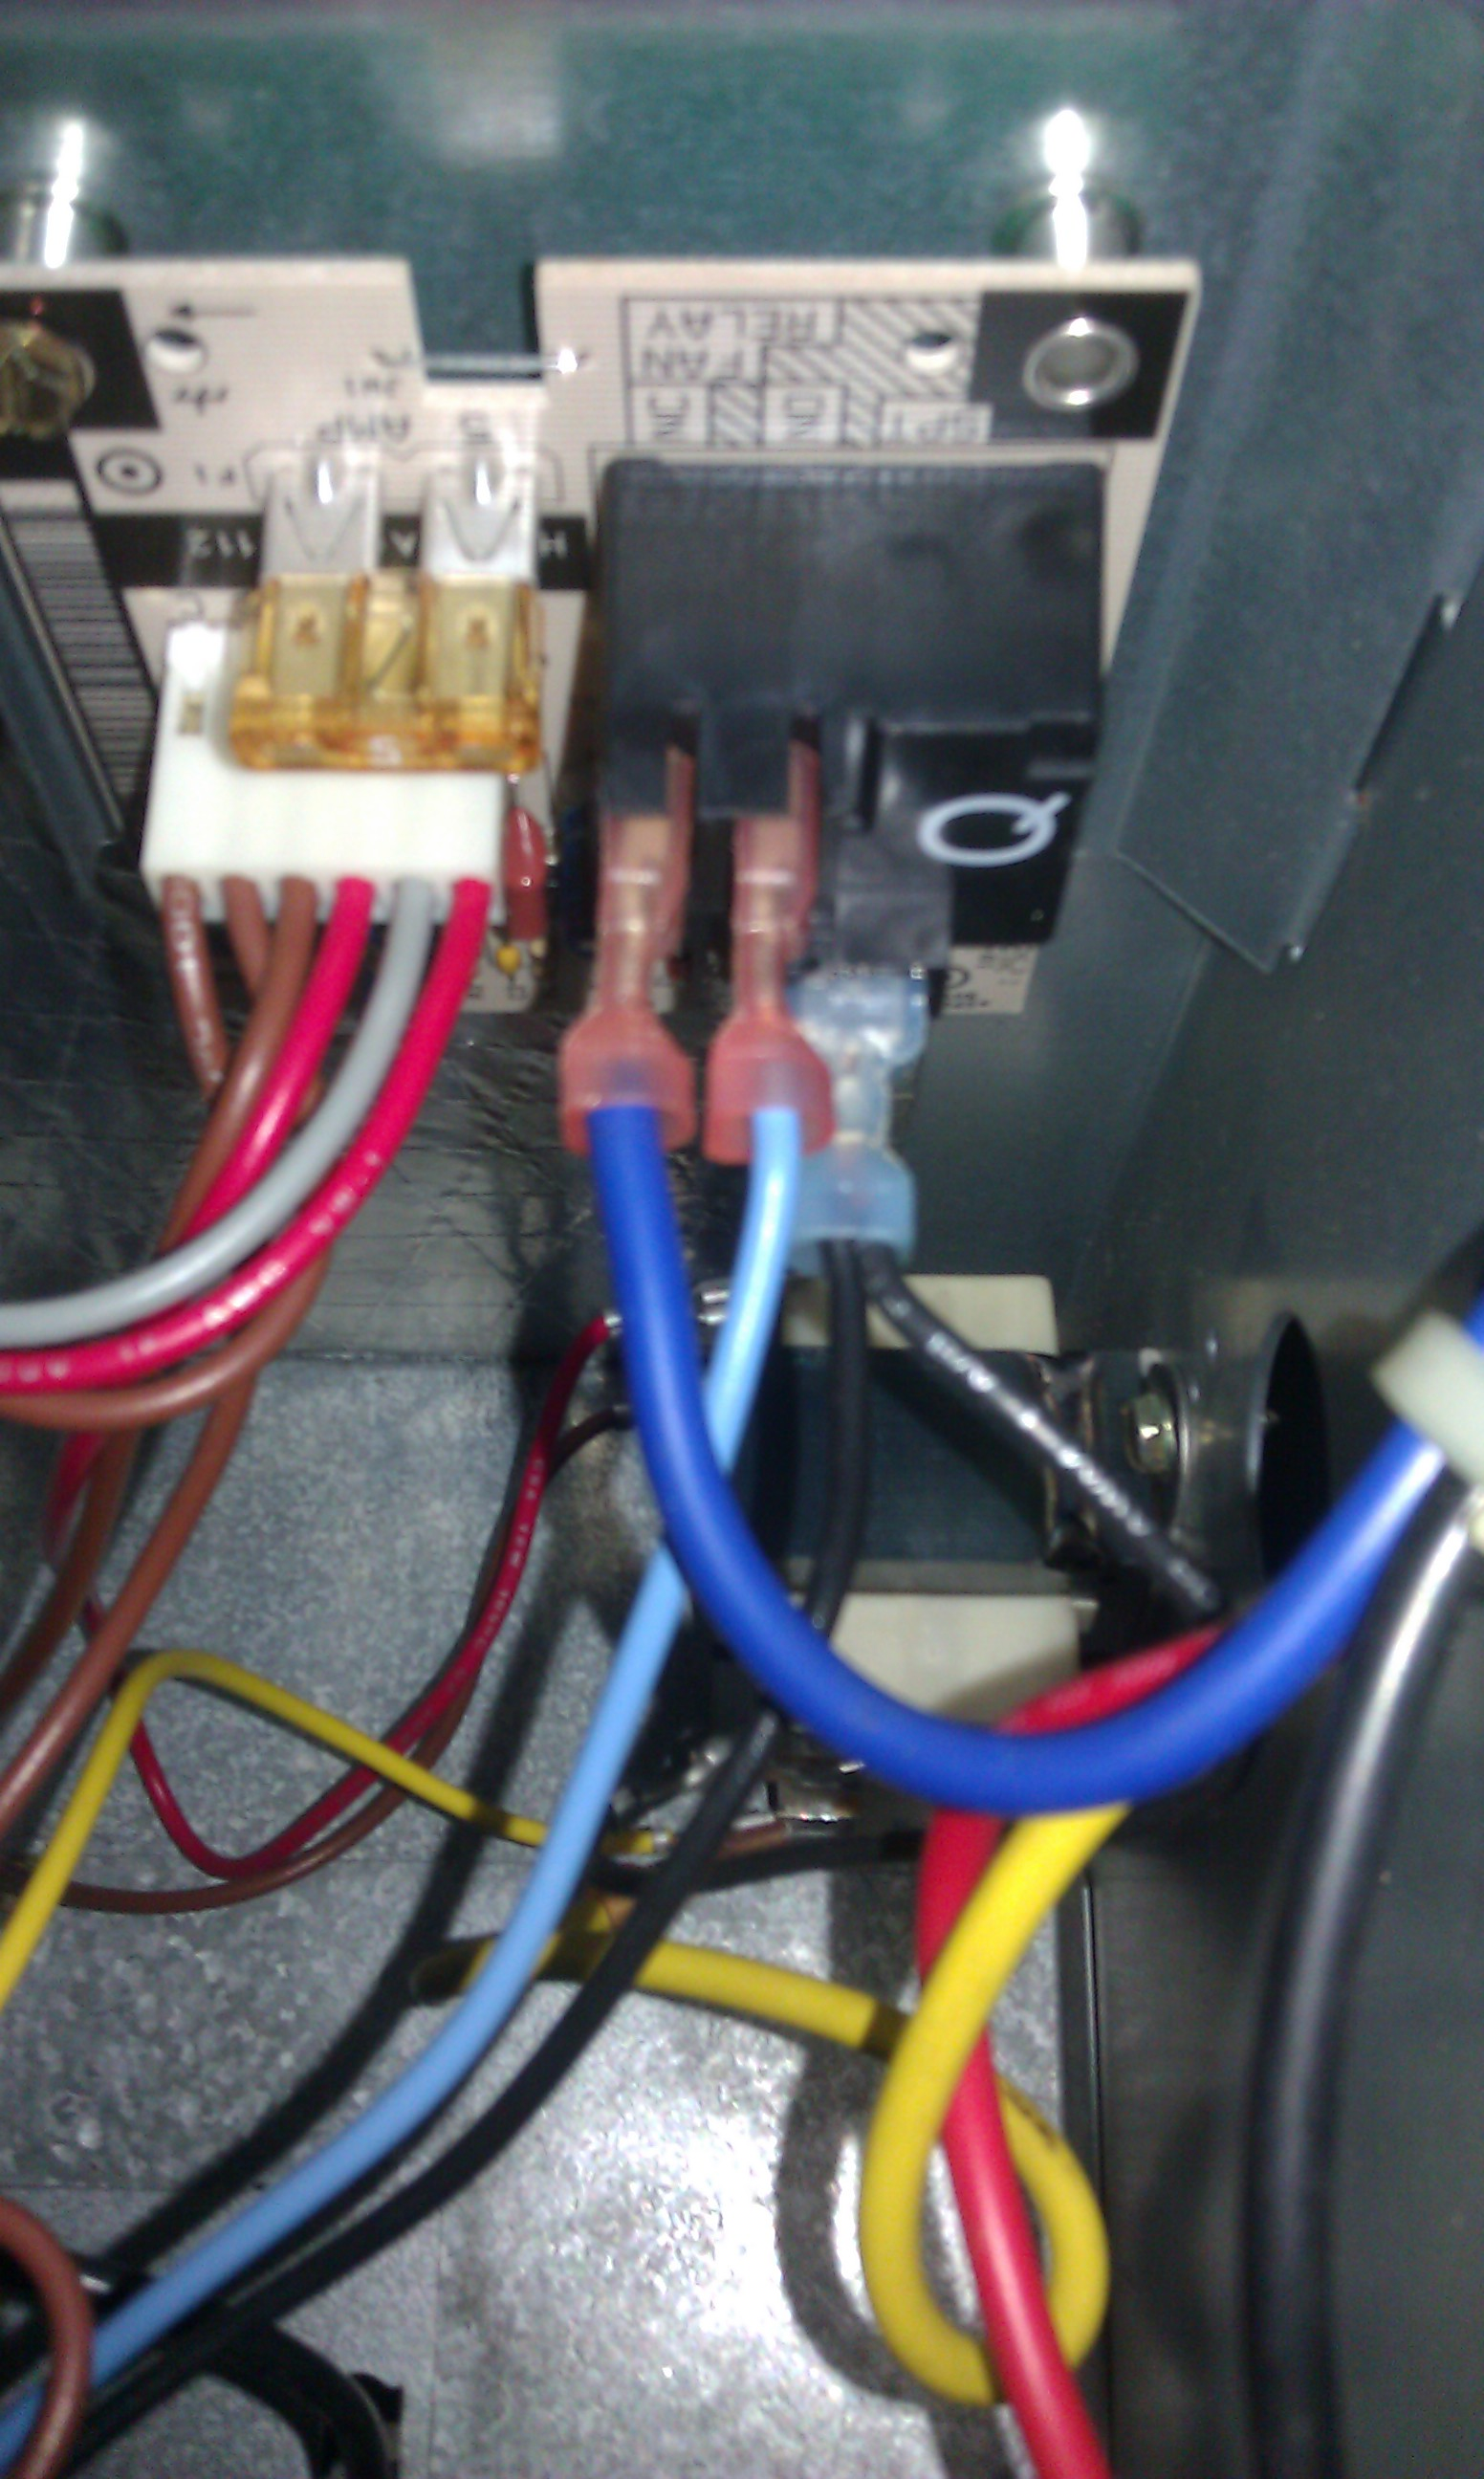 I Need A Wiring Diagram For The Blower Relay On A Heil Ebx